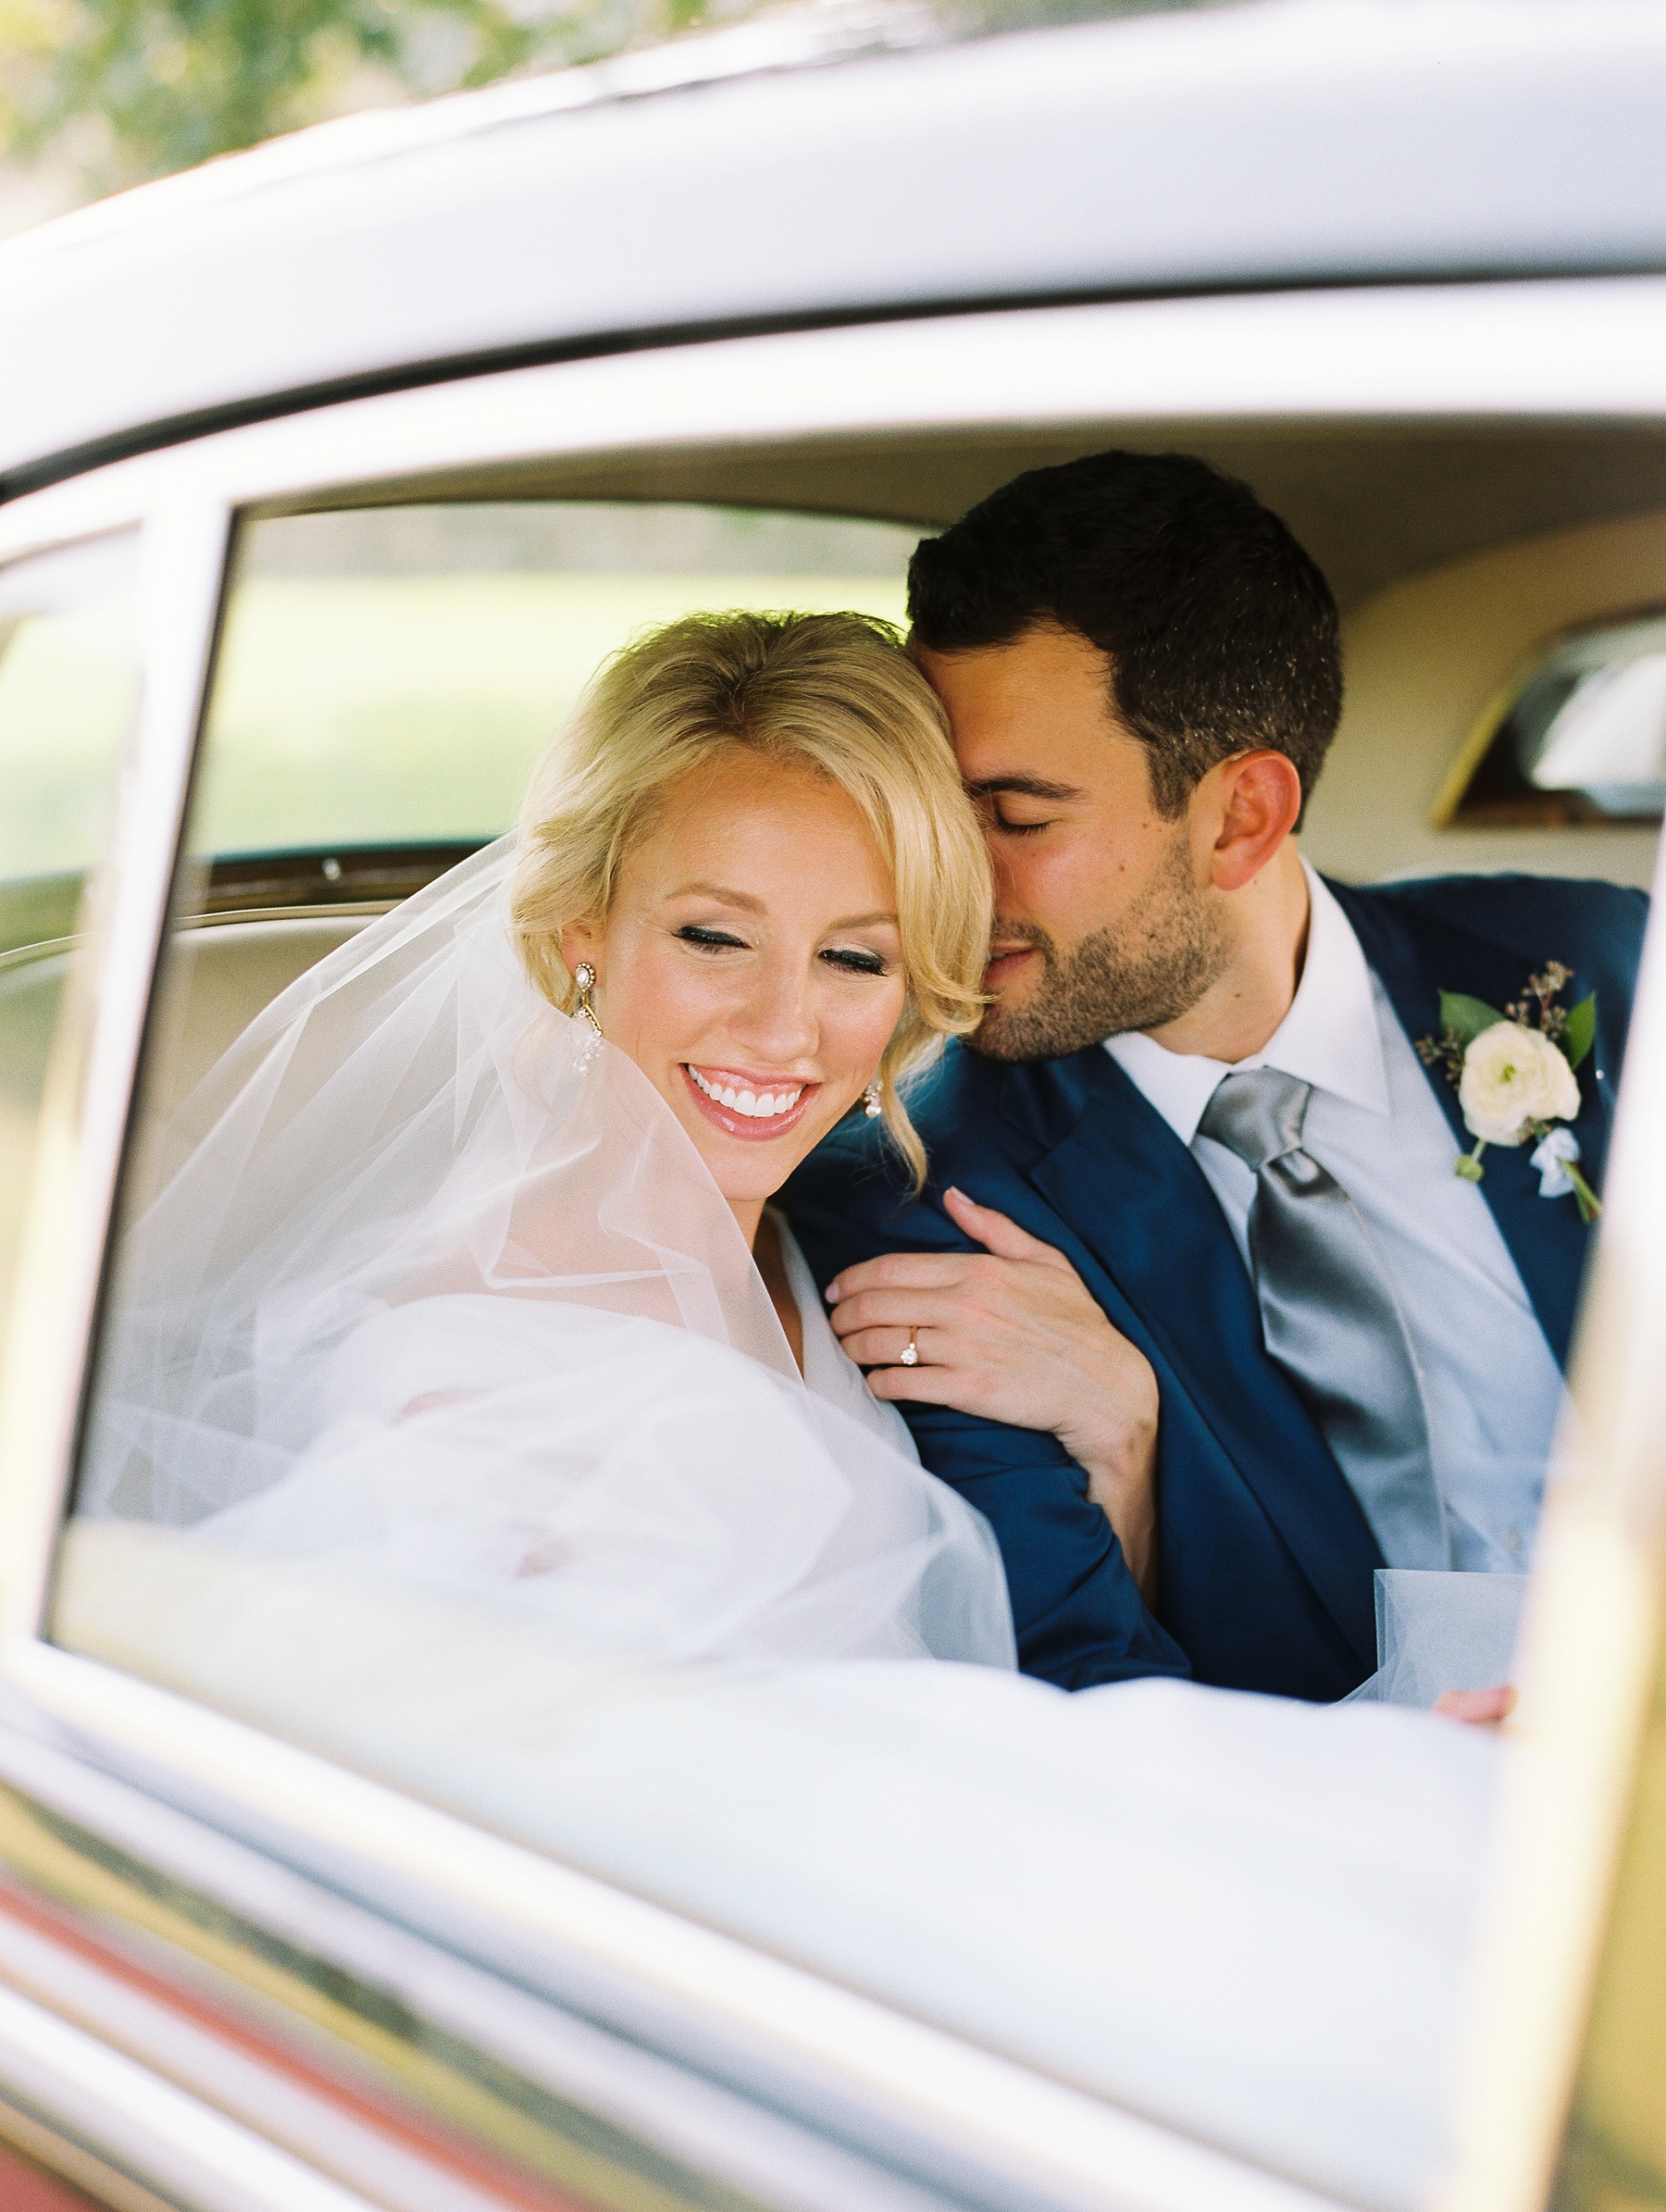 CMT Music City Jessica Mack and Andreas Plackis Wedding_1508.jpg